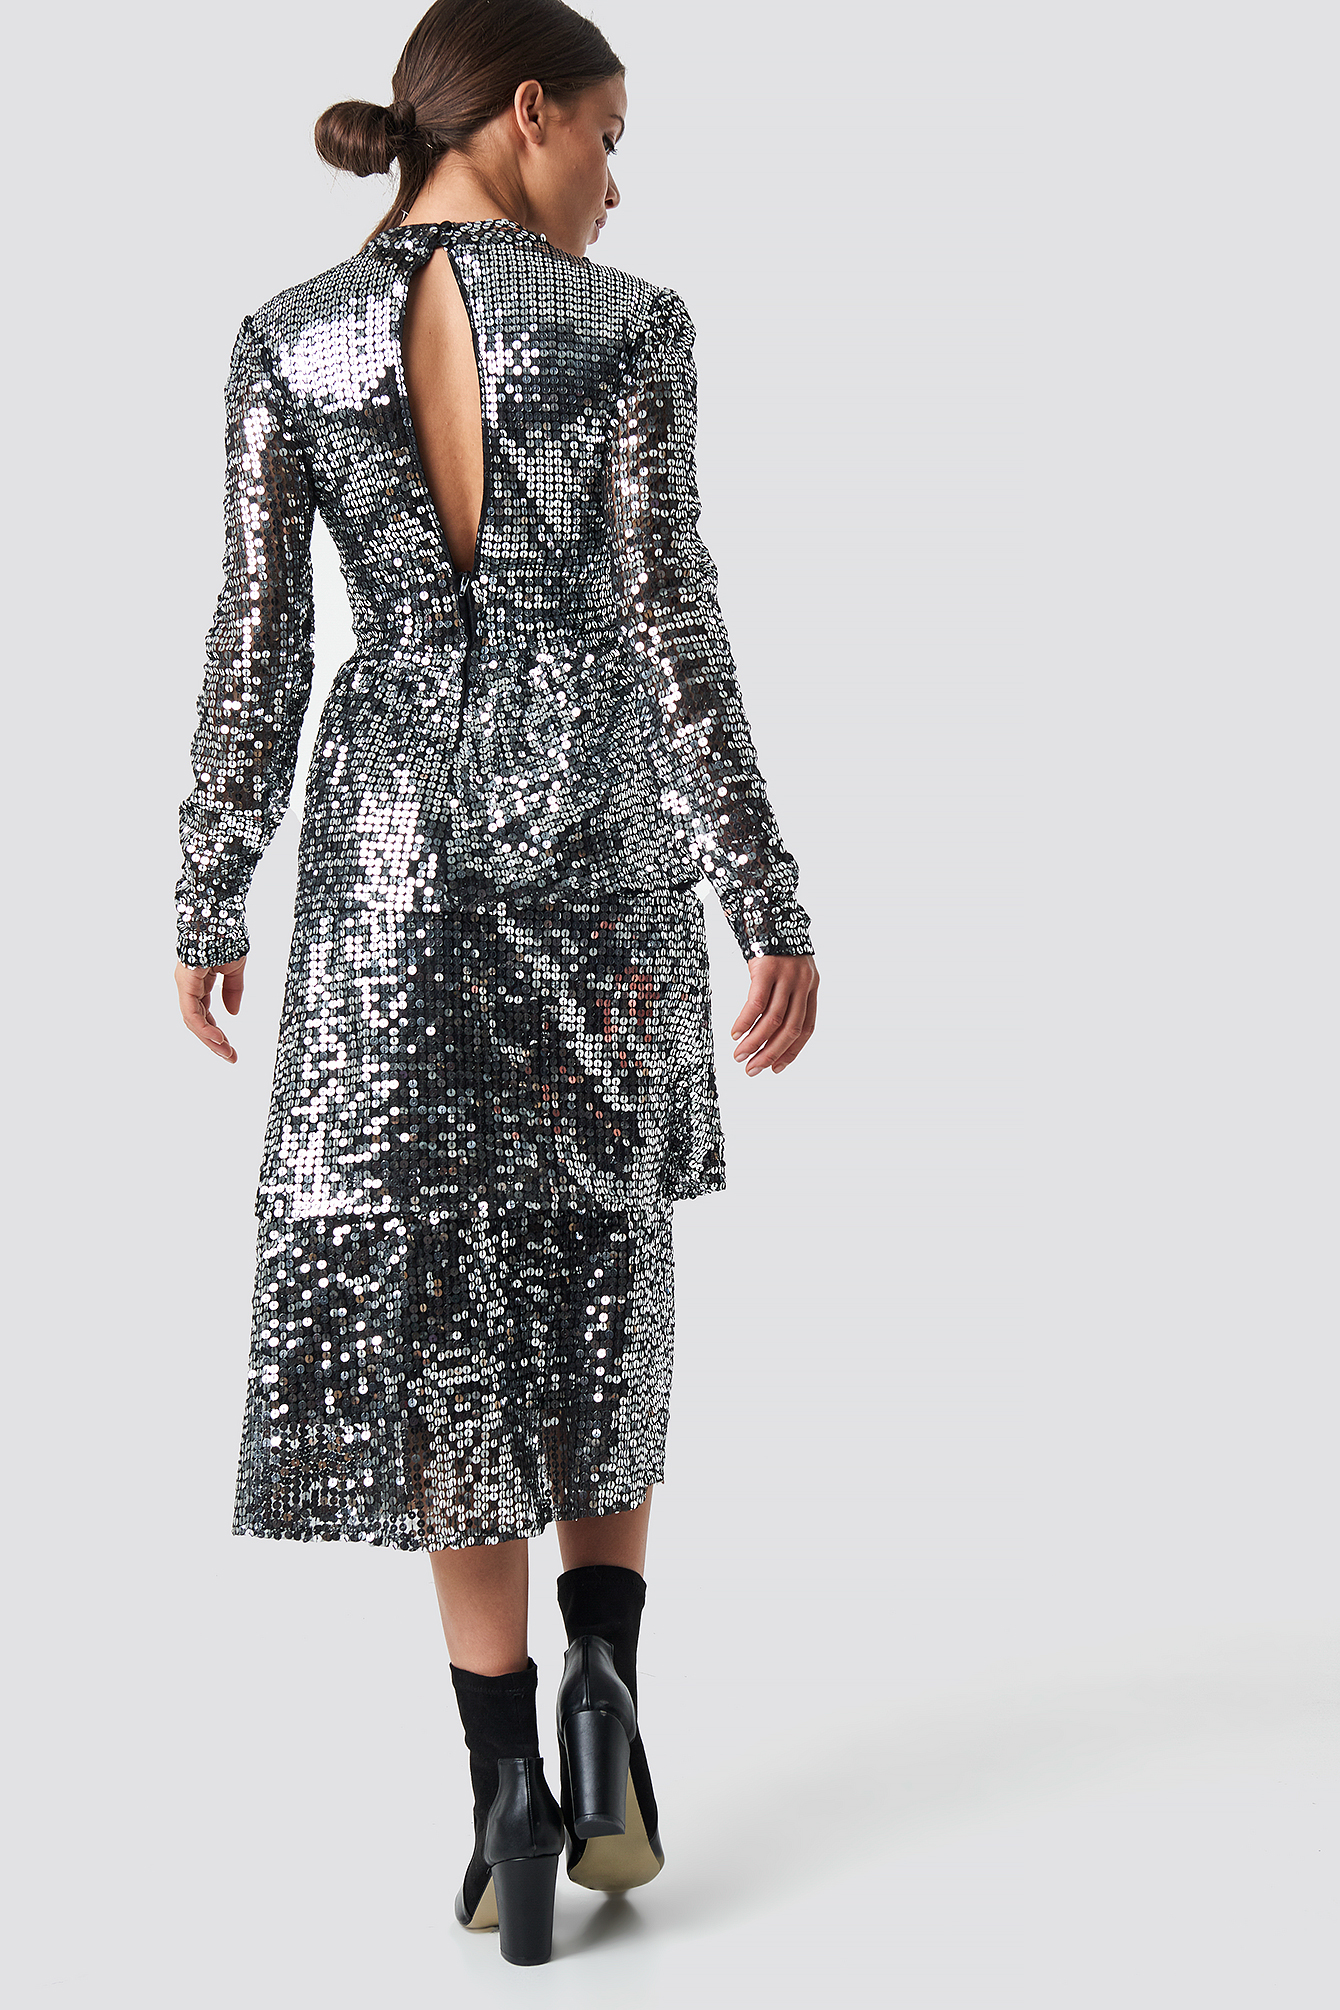 na-kd party -  Open Back Sequins Midi Dress - Silver